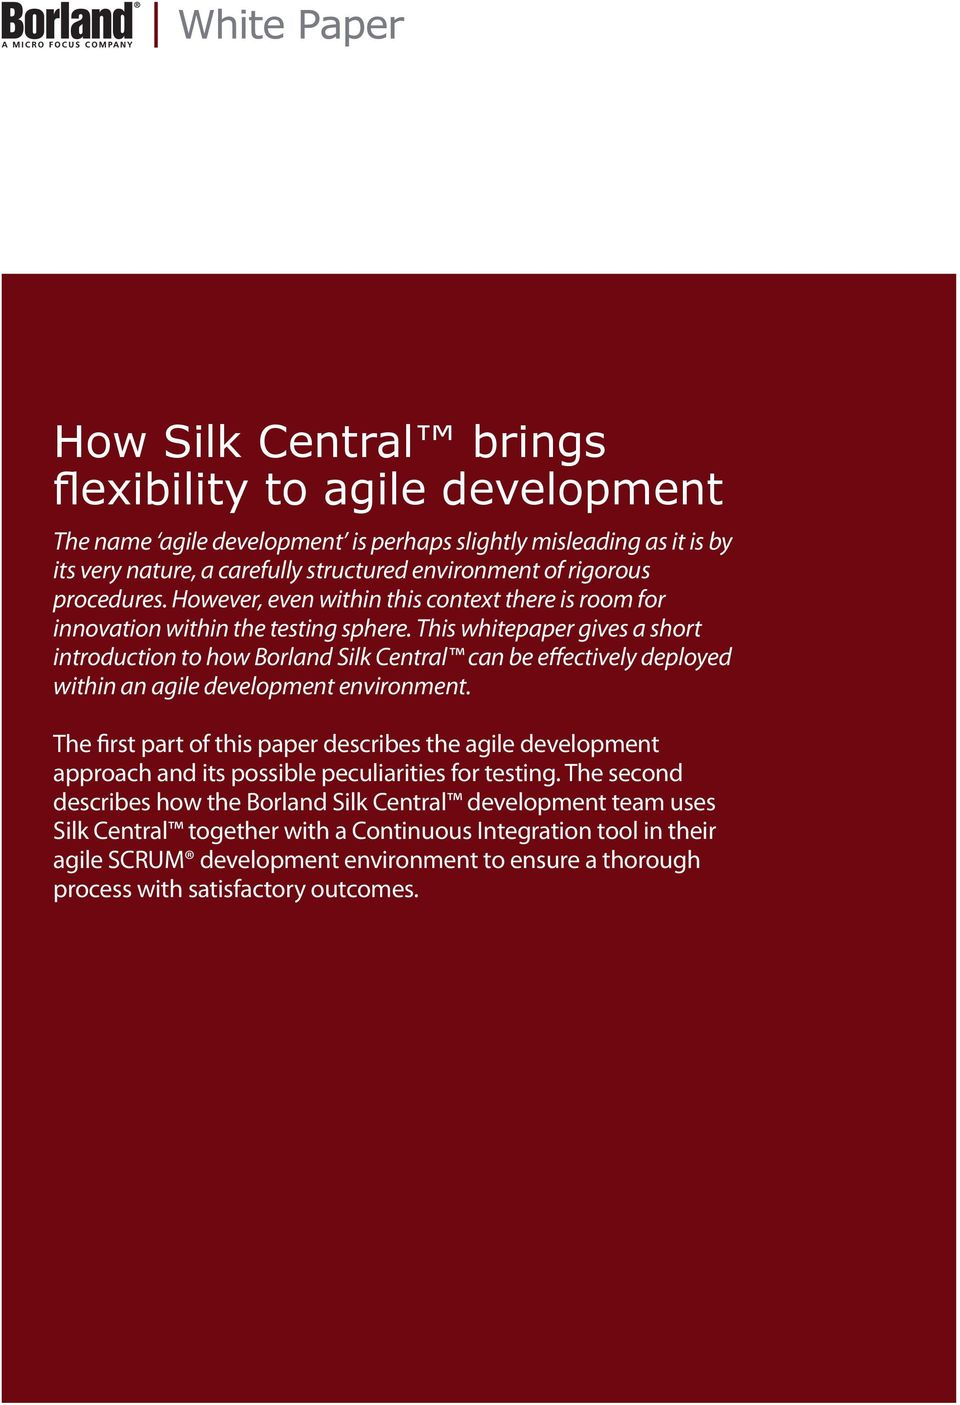 This whitepaper gives a short introduction to how Borland Silk Central can be effectively deployed within an agile development environment.